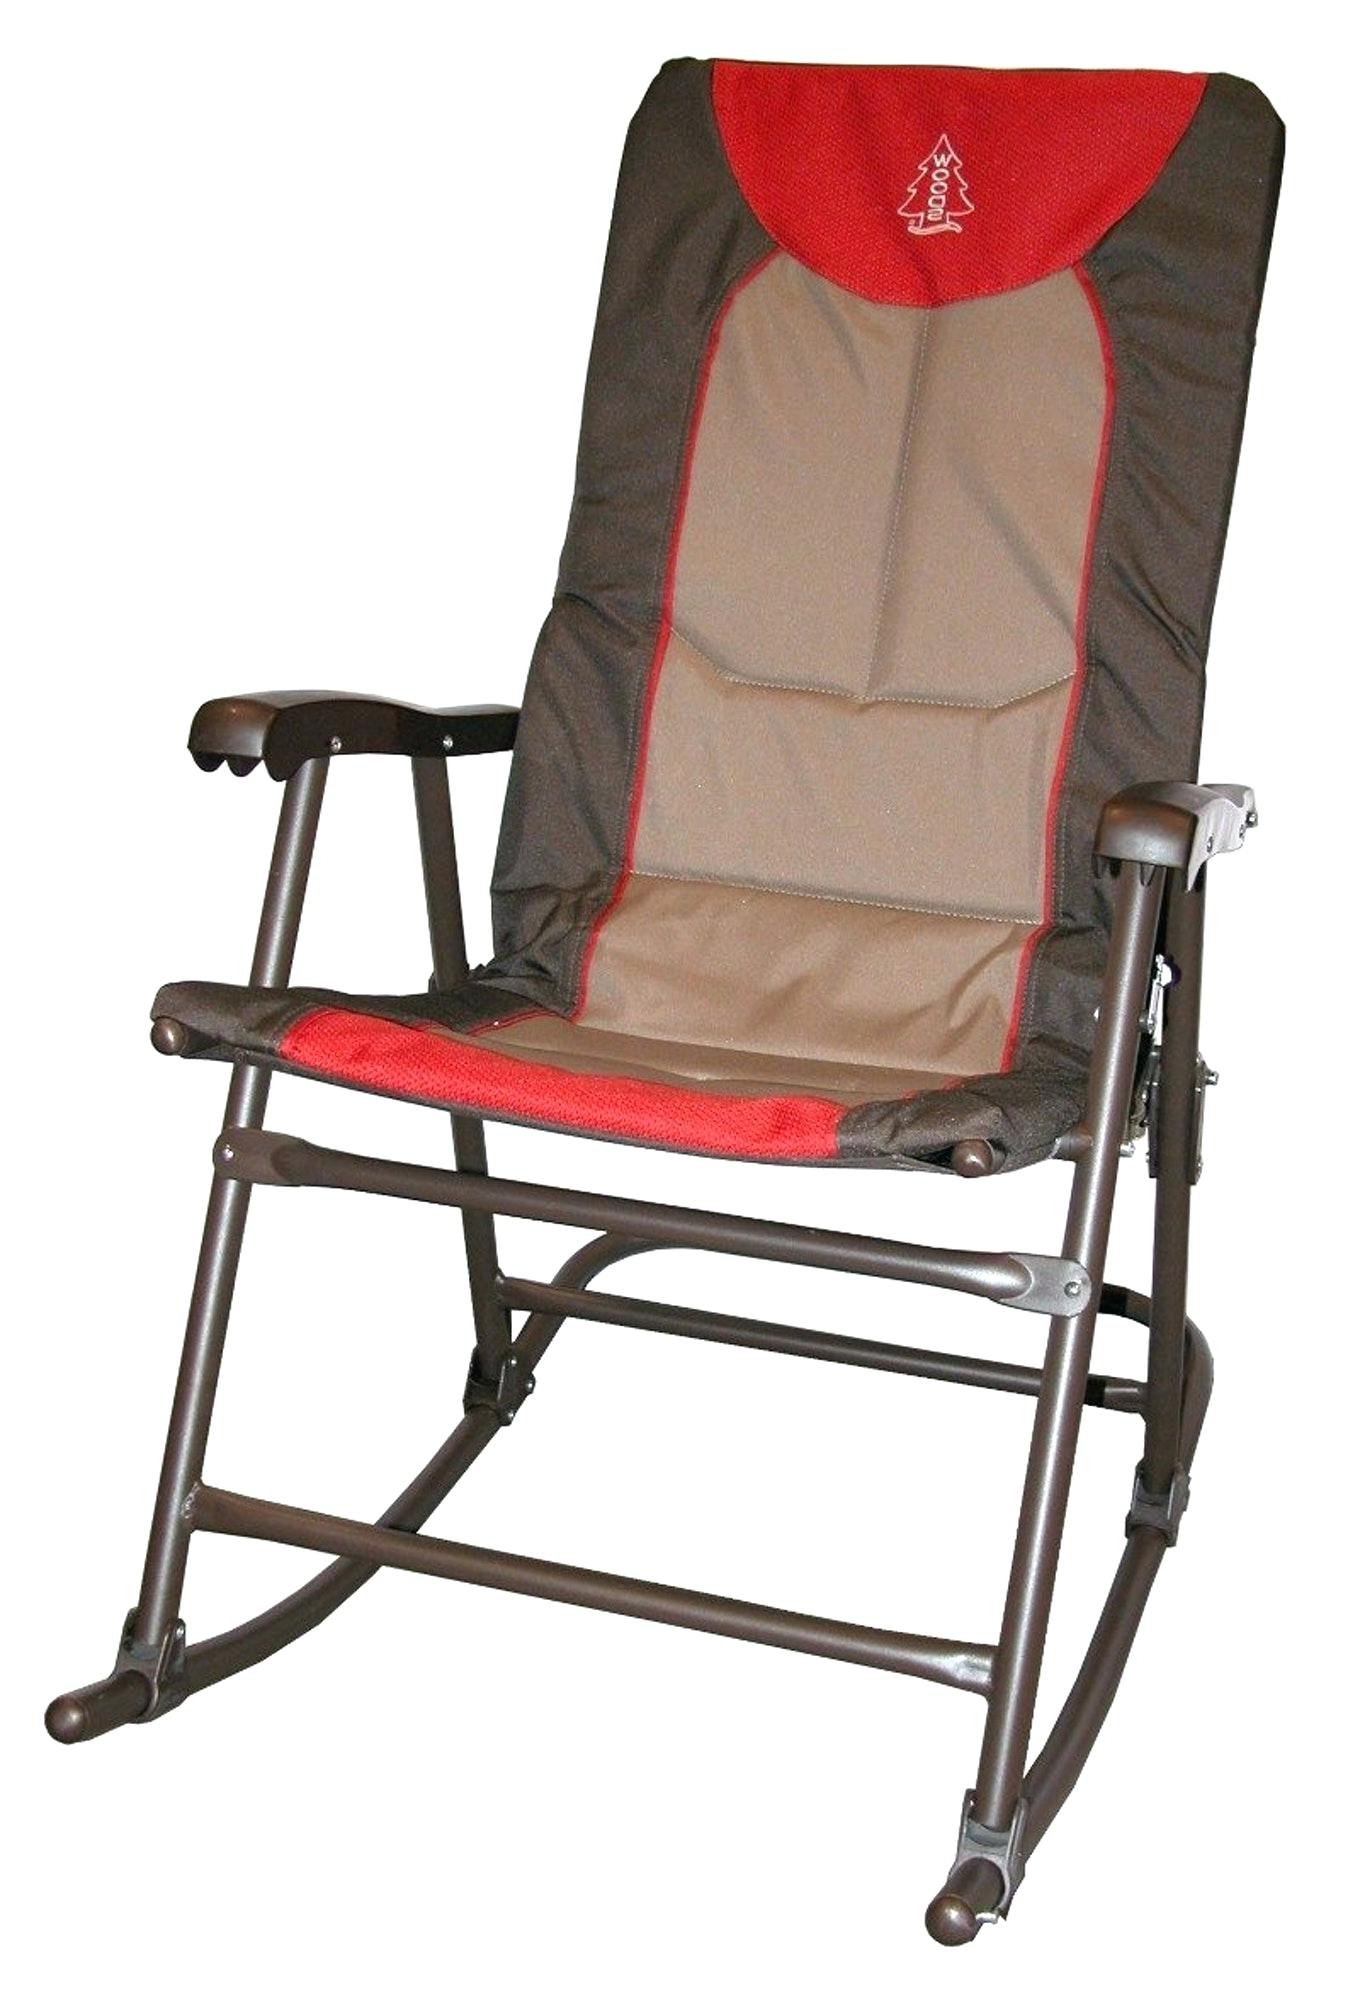 Fashionable Folding Rocking Chair Costco Vintage Aluminum At Camping World Throughout Rocking Chairs At Costco (View 11 of 15)